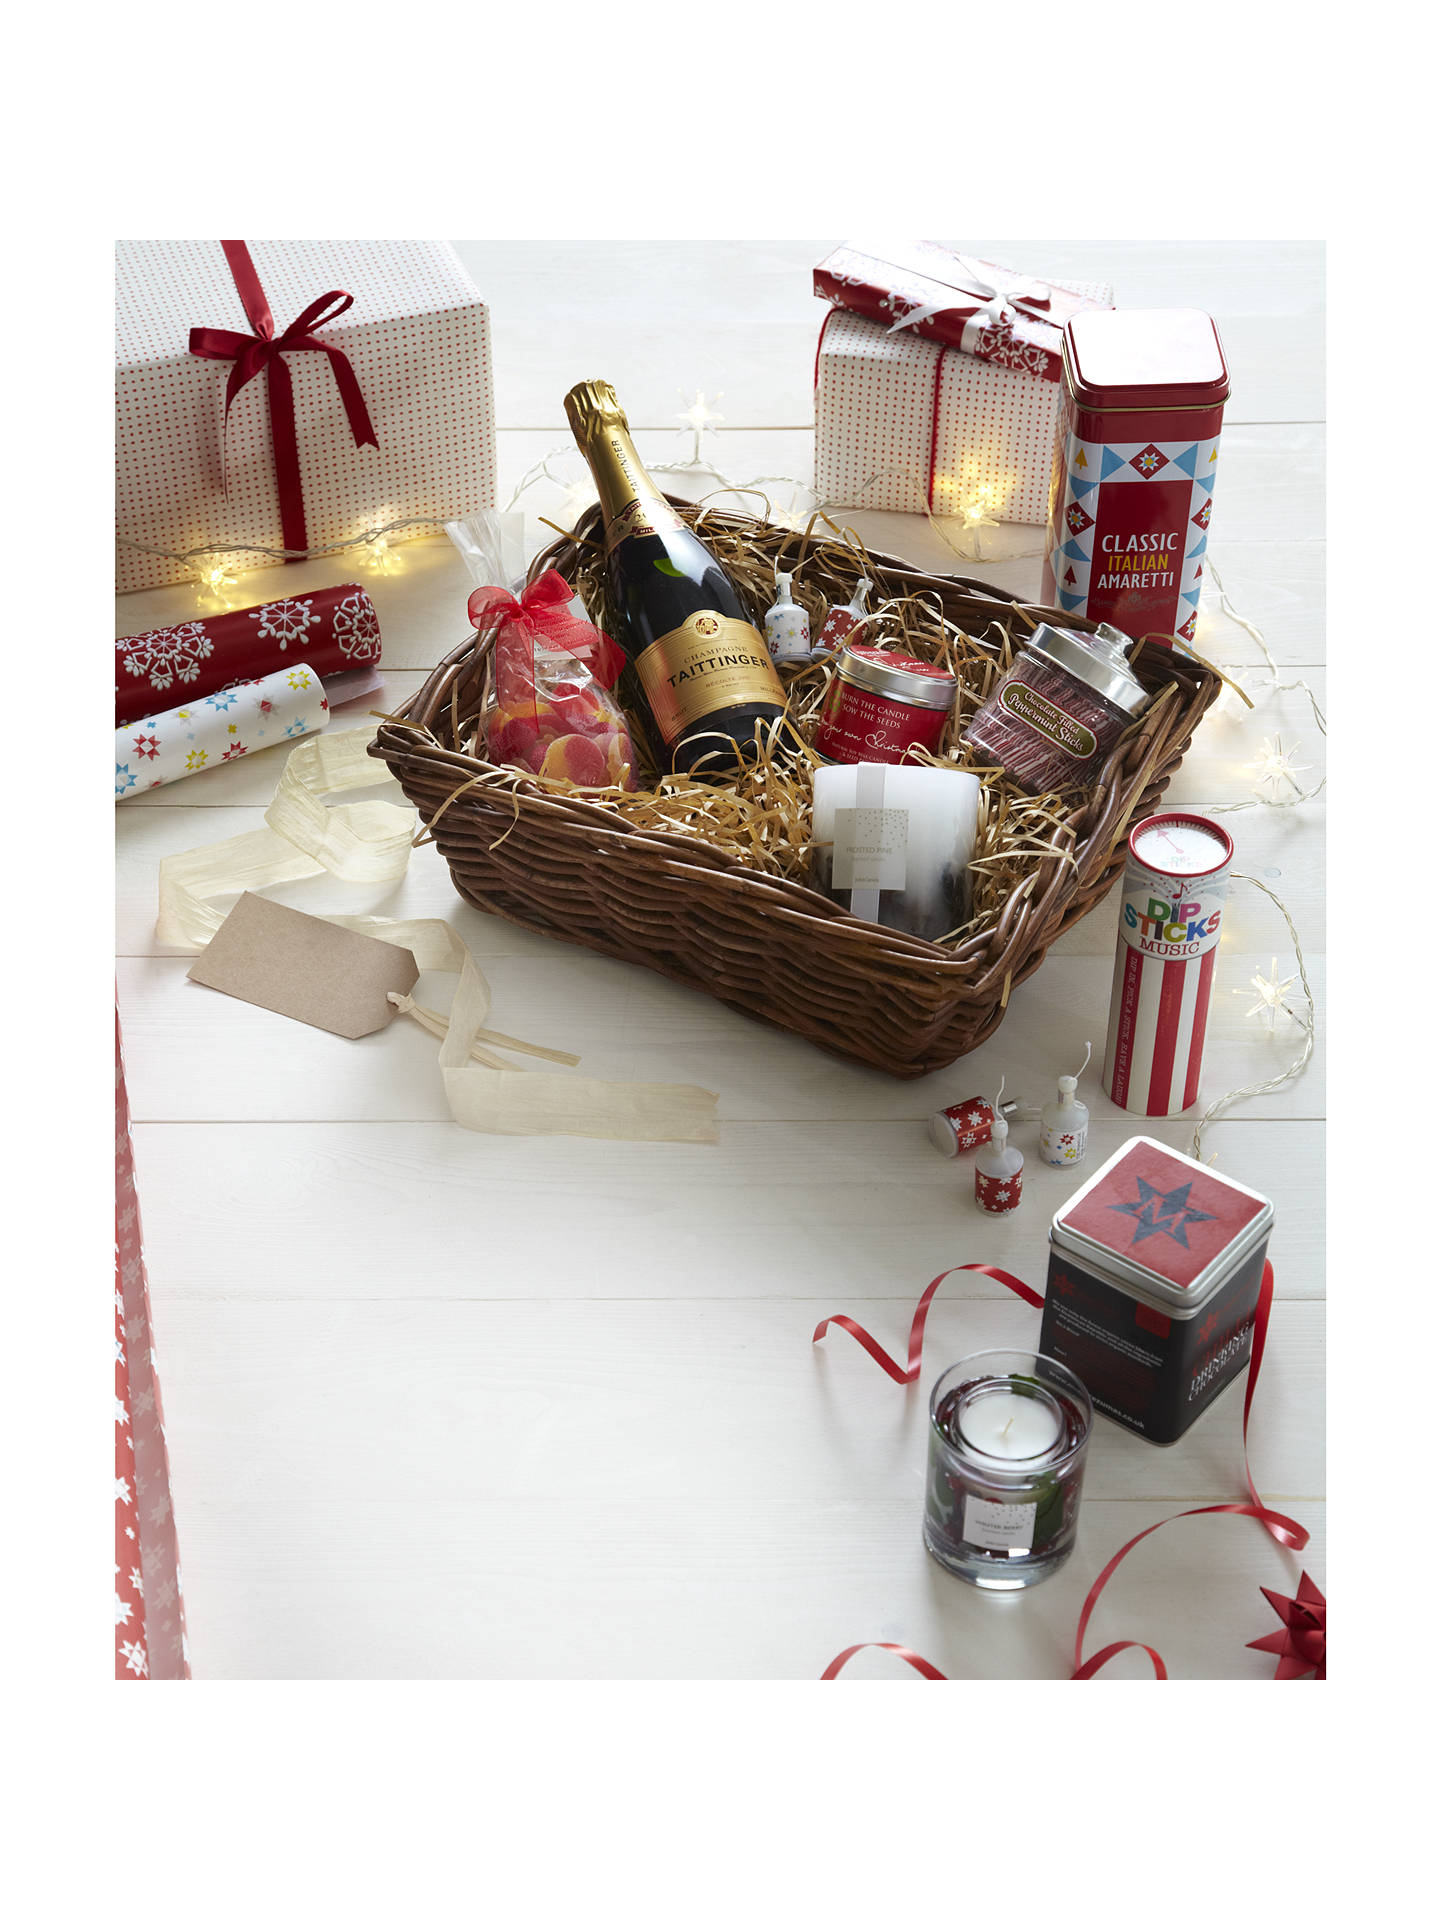 BuyJohn Lewis Build Your Own Hamper Set Online at johnlewis.com